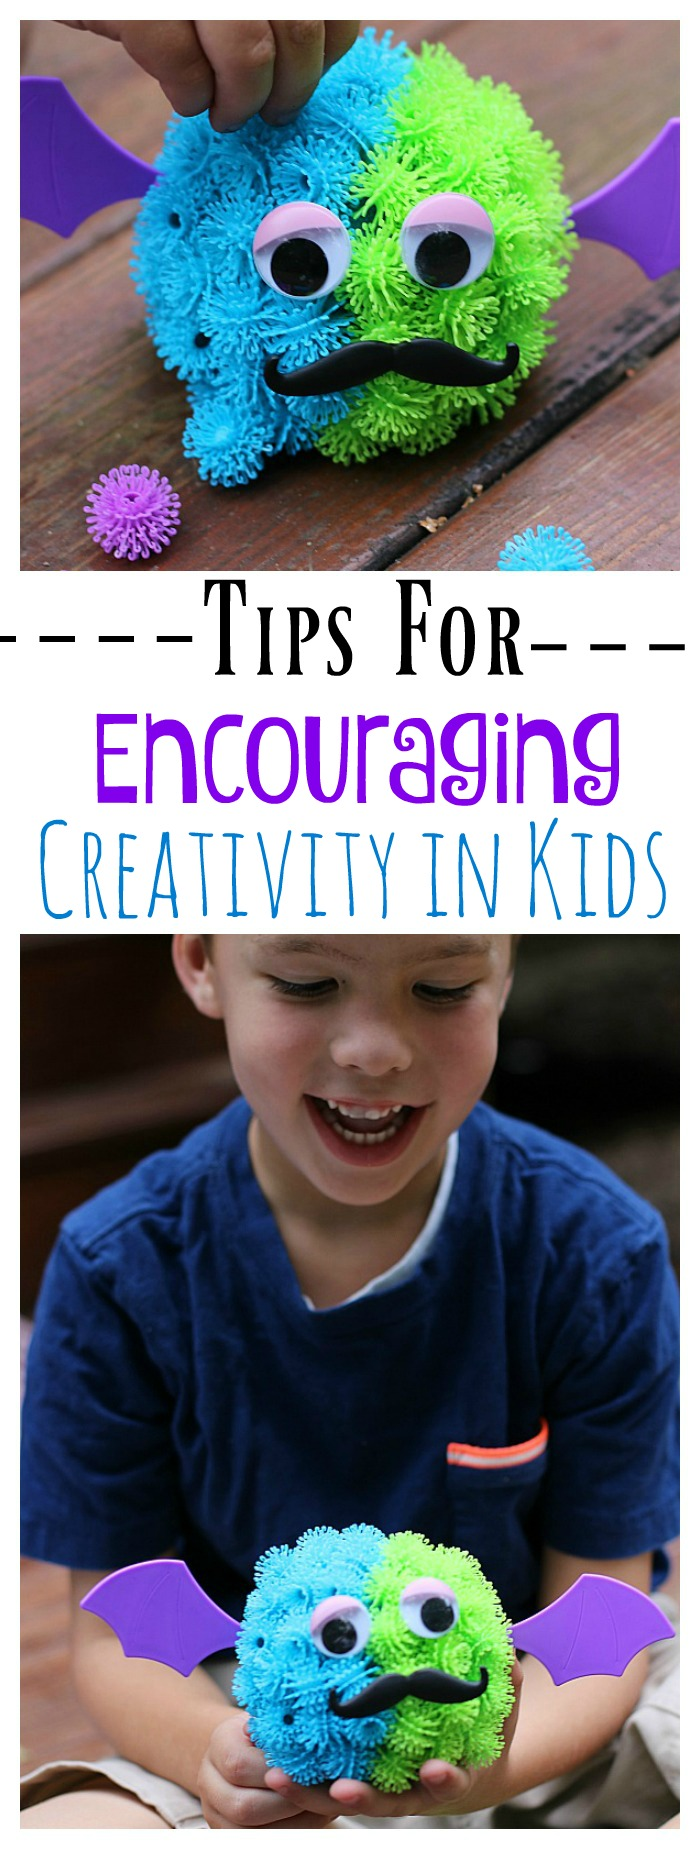 tips-for-encouraging-creativity-in-kids